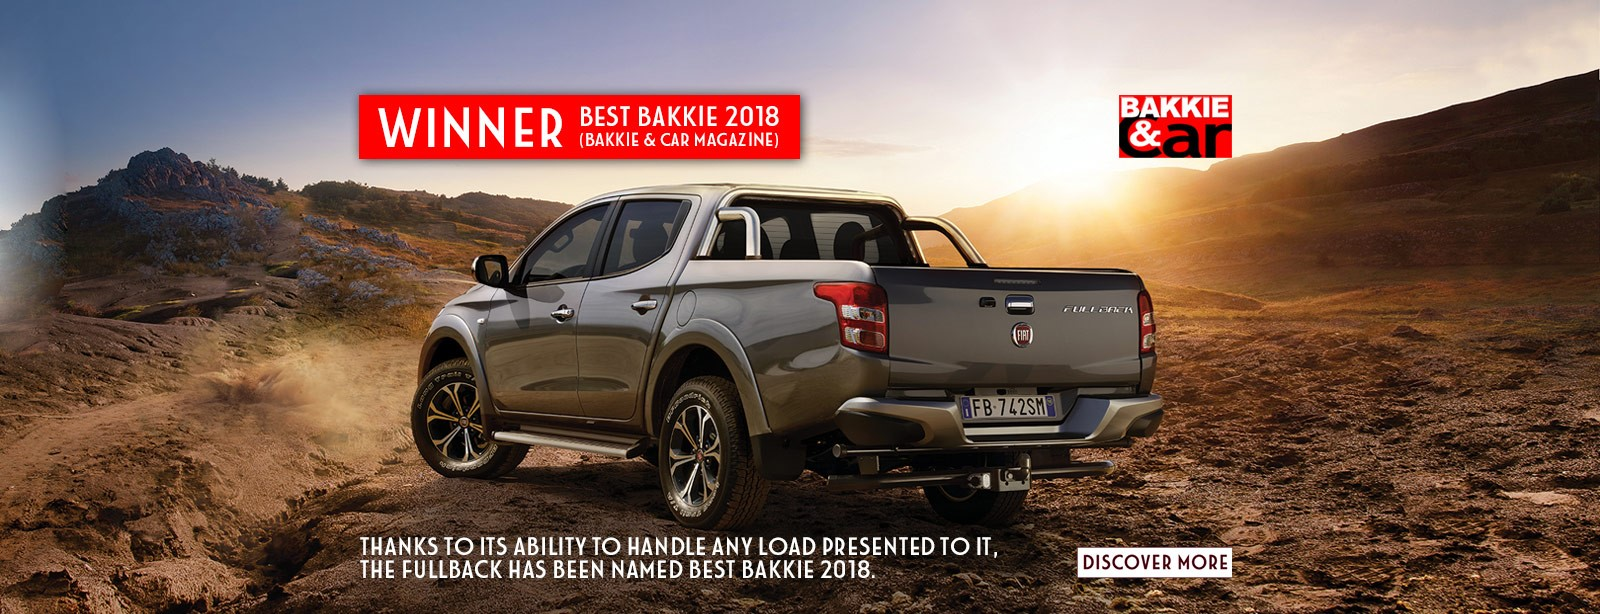 The New Fiat Fullback: 2018 Best Bakkie WINNER!